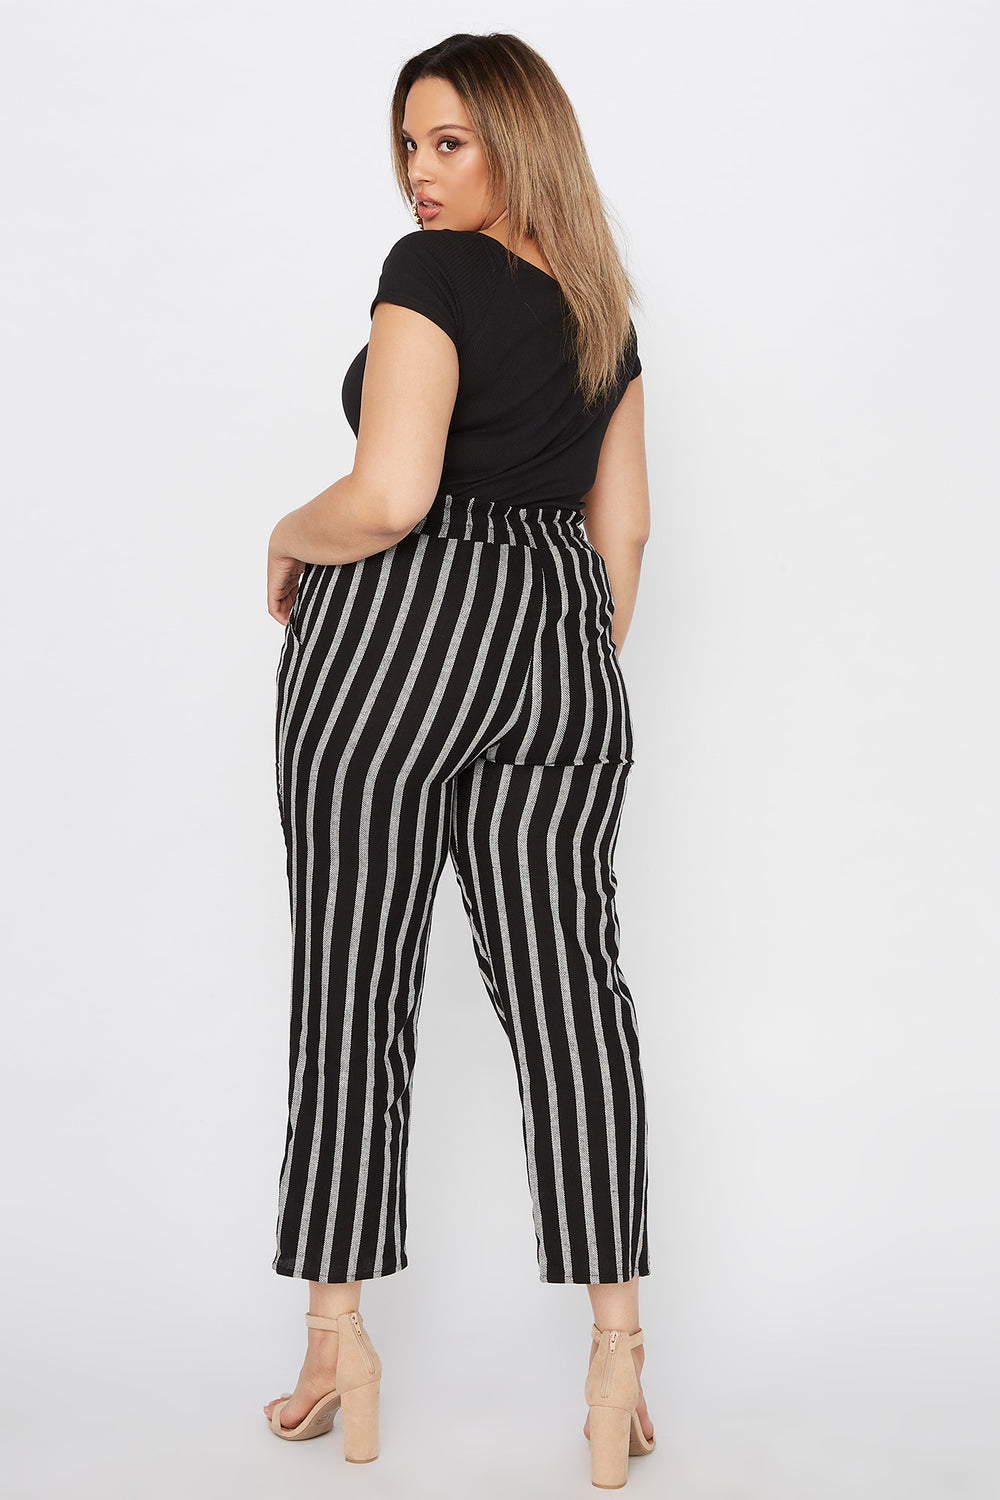 Plus Size Cropped Striped Self Tie Paperbag Linen Pant Black